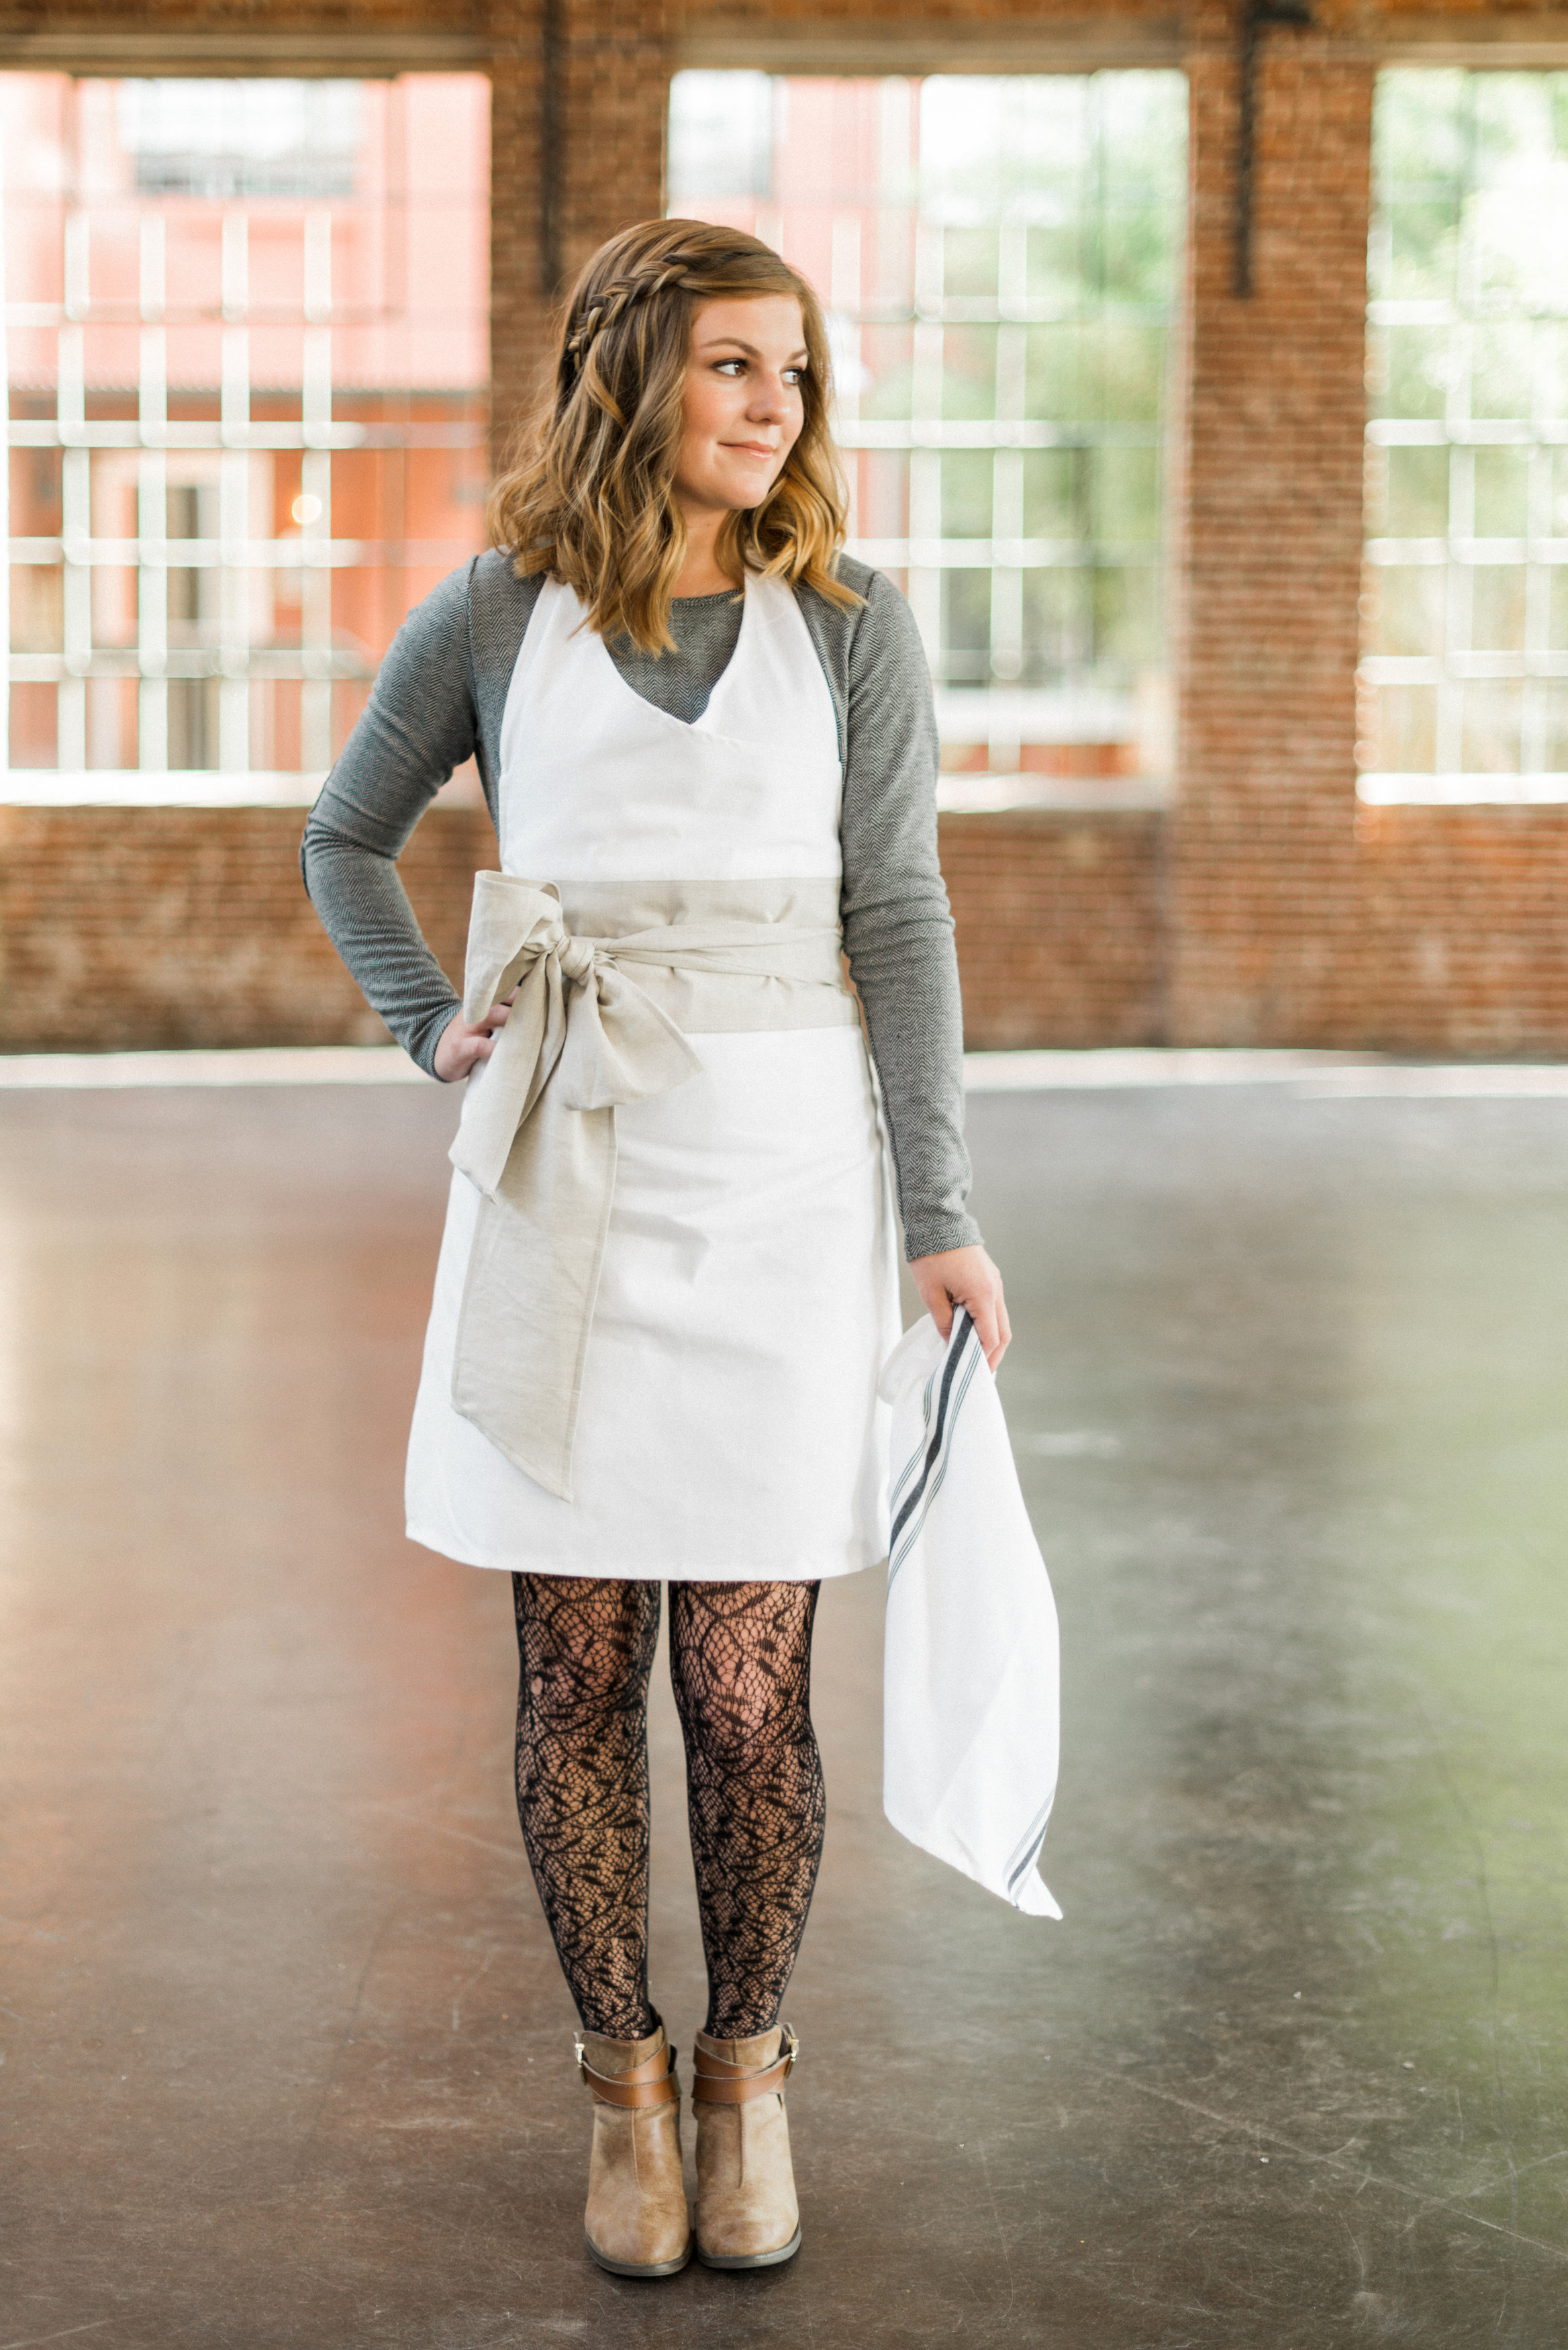 Tea Towel by Homespun ATL+ Harvest Dinner Inspiration   Photo by Rustic White Photography